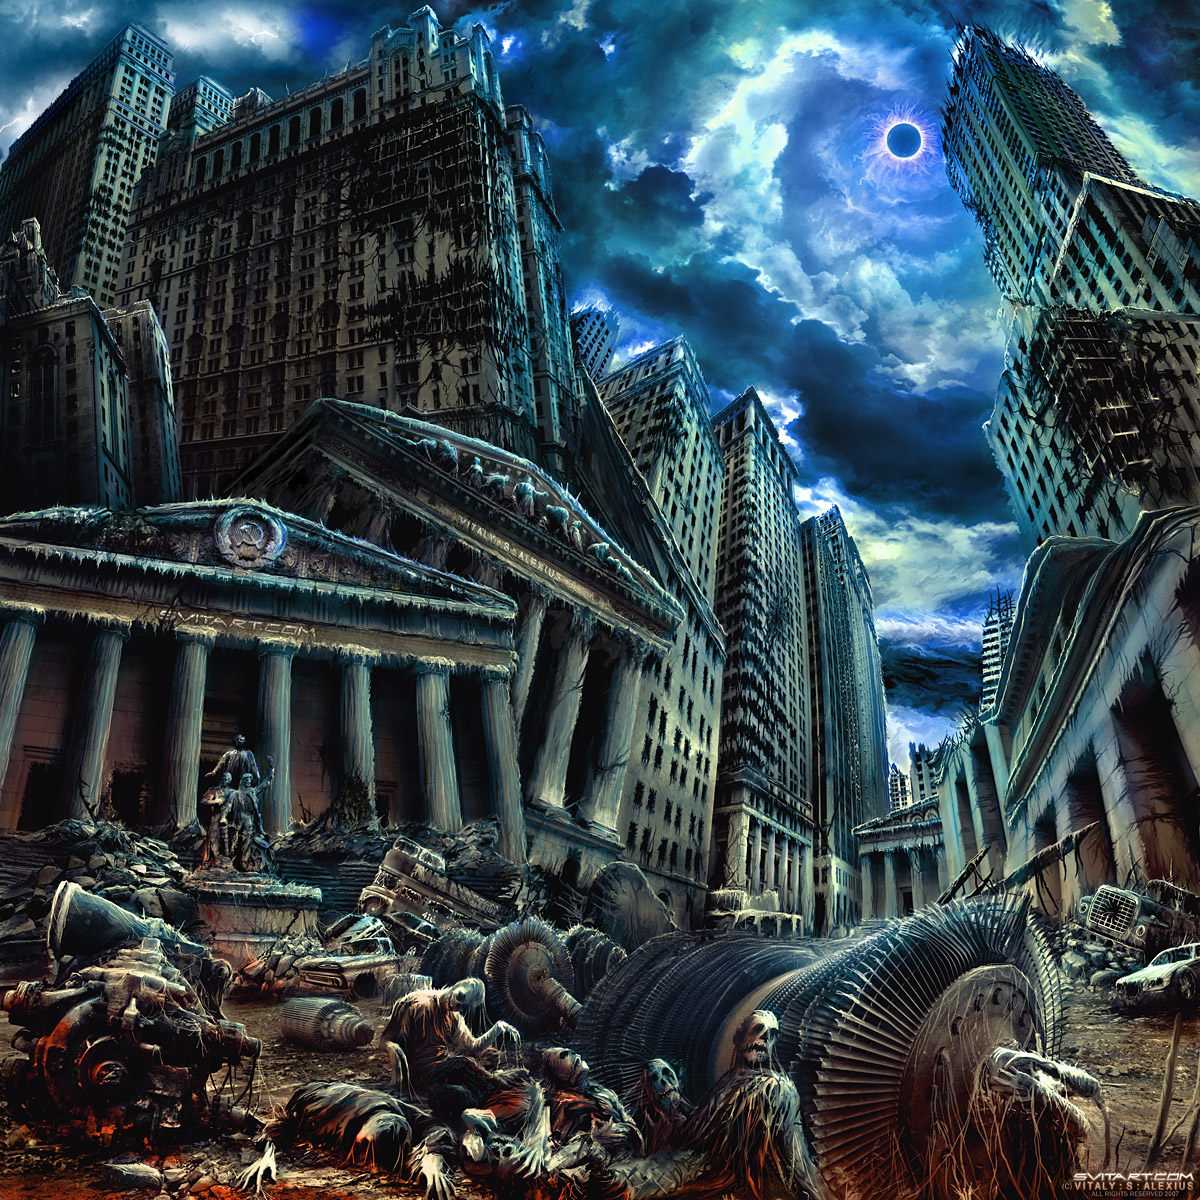 Aeons of Eclipse by alexiuss